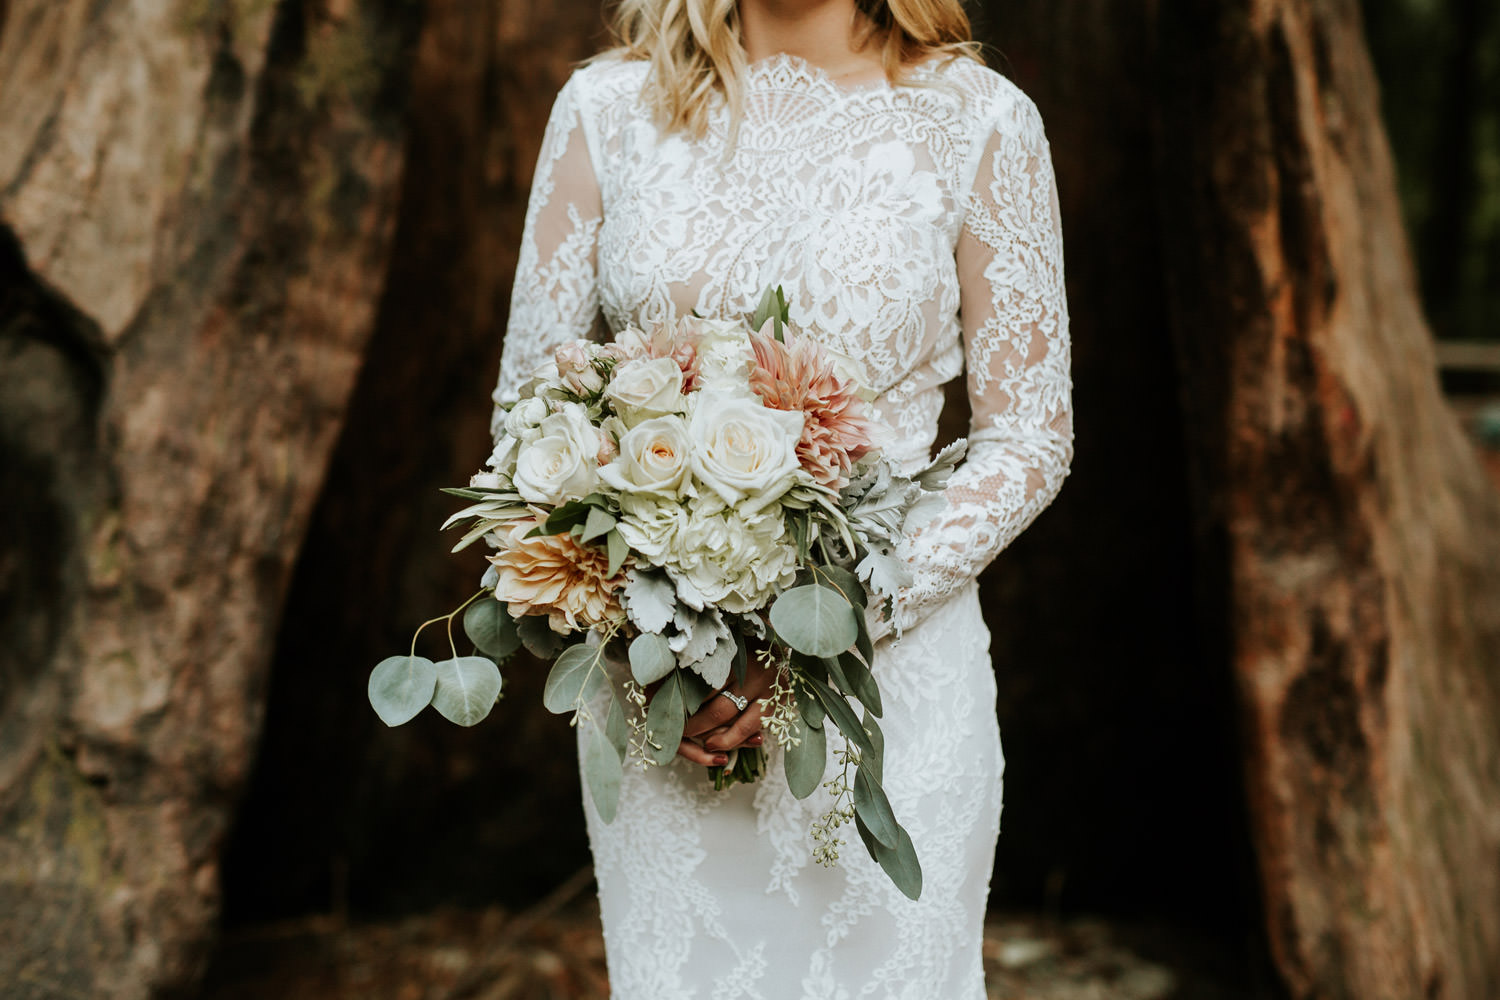 Portrait of the bride taken at Camp Campbell in California. Bride wearing calla blanche dress